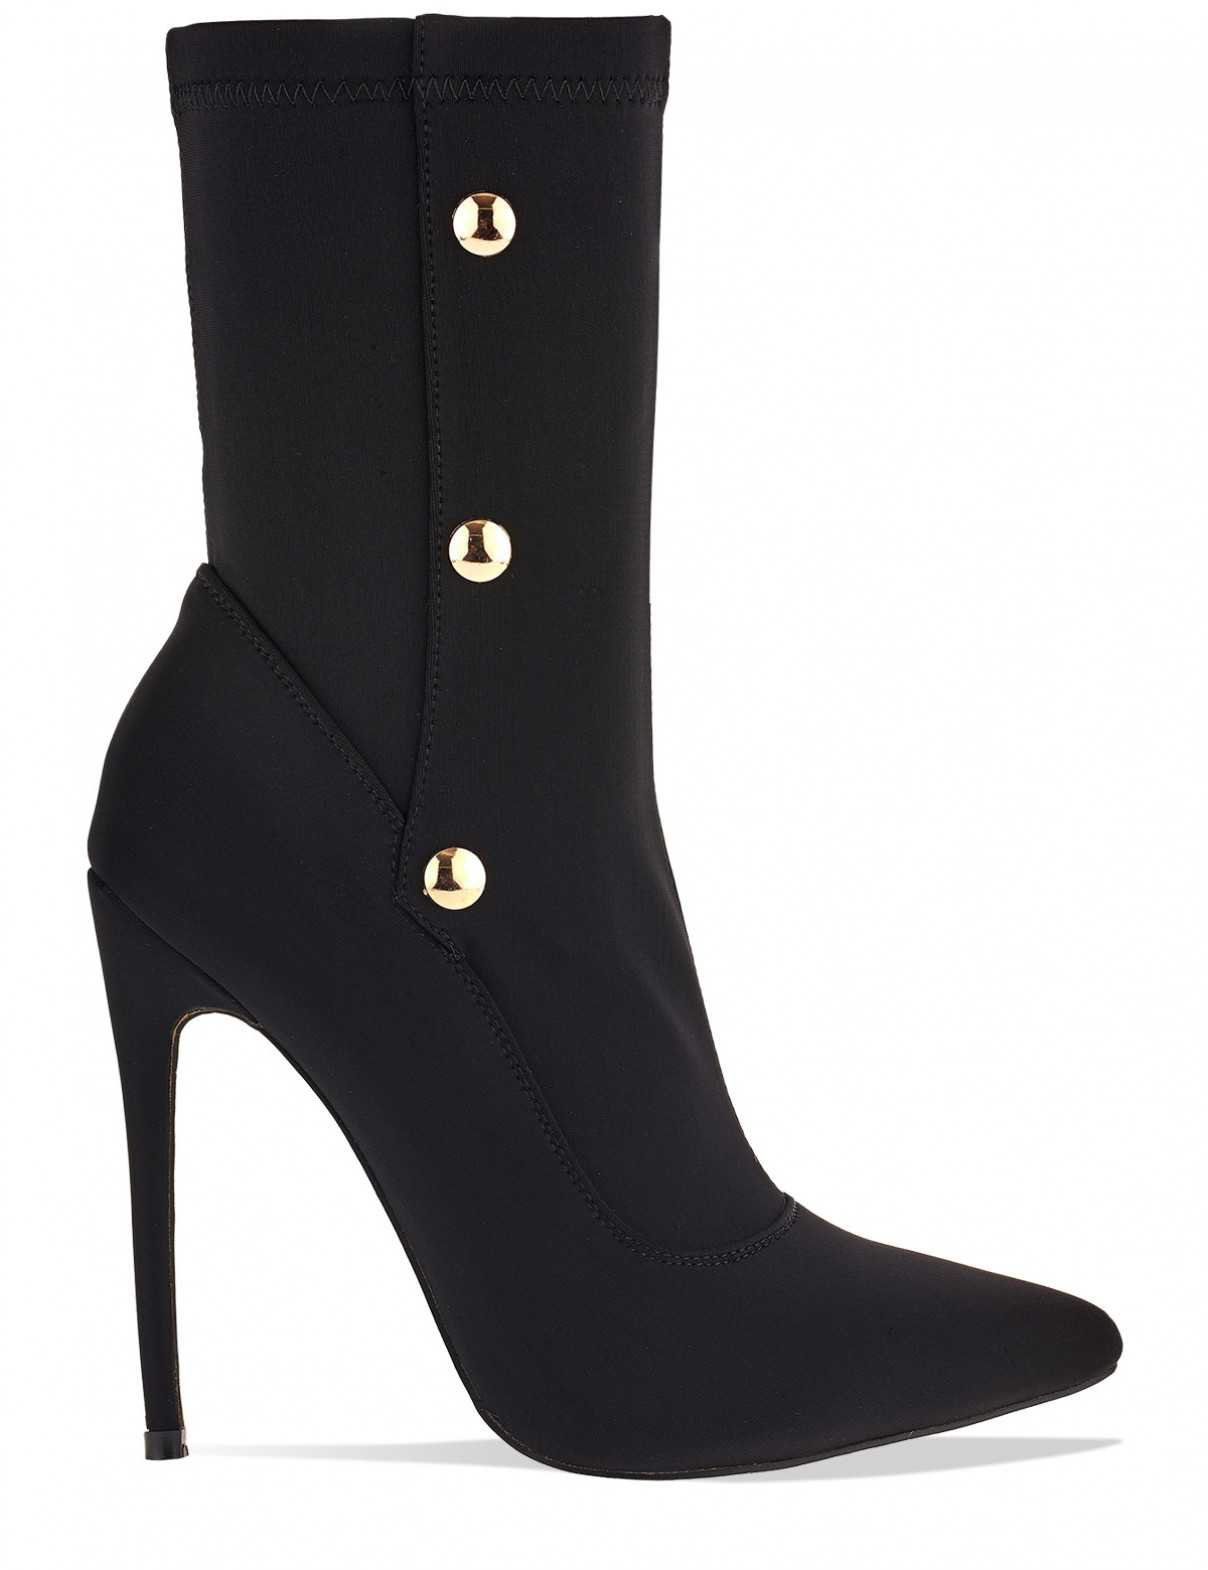 Unfoolish Stiletto Stretch Sock Ankle Boots With Popper Detail In Black Lycra - Buscar con Google